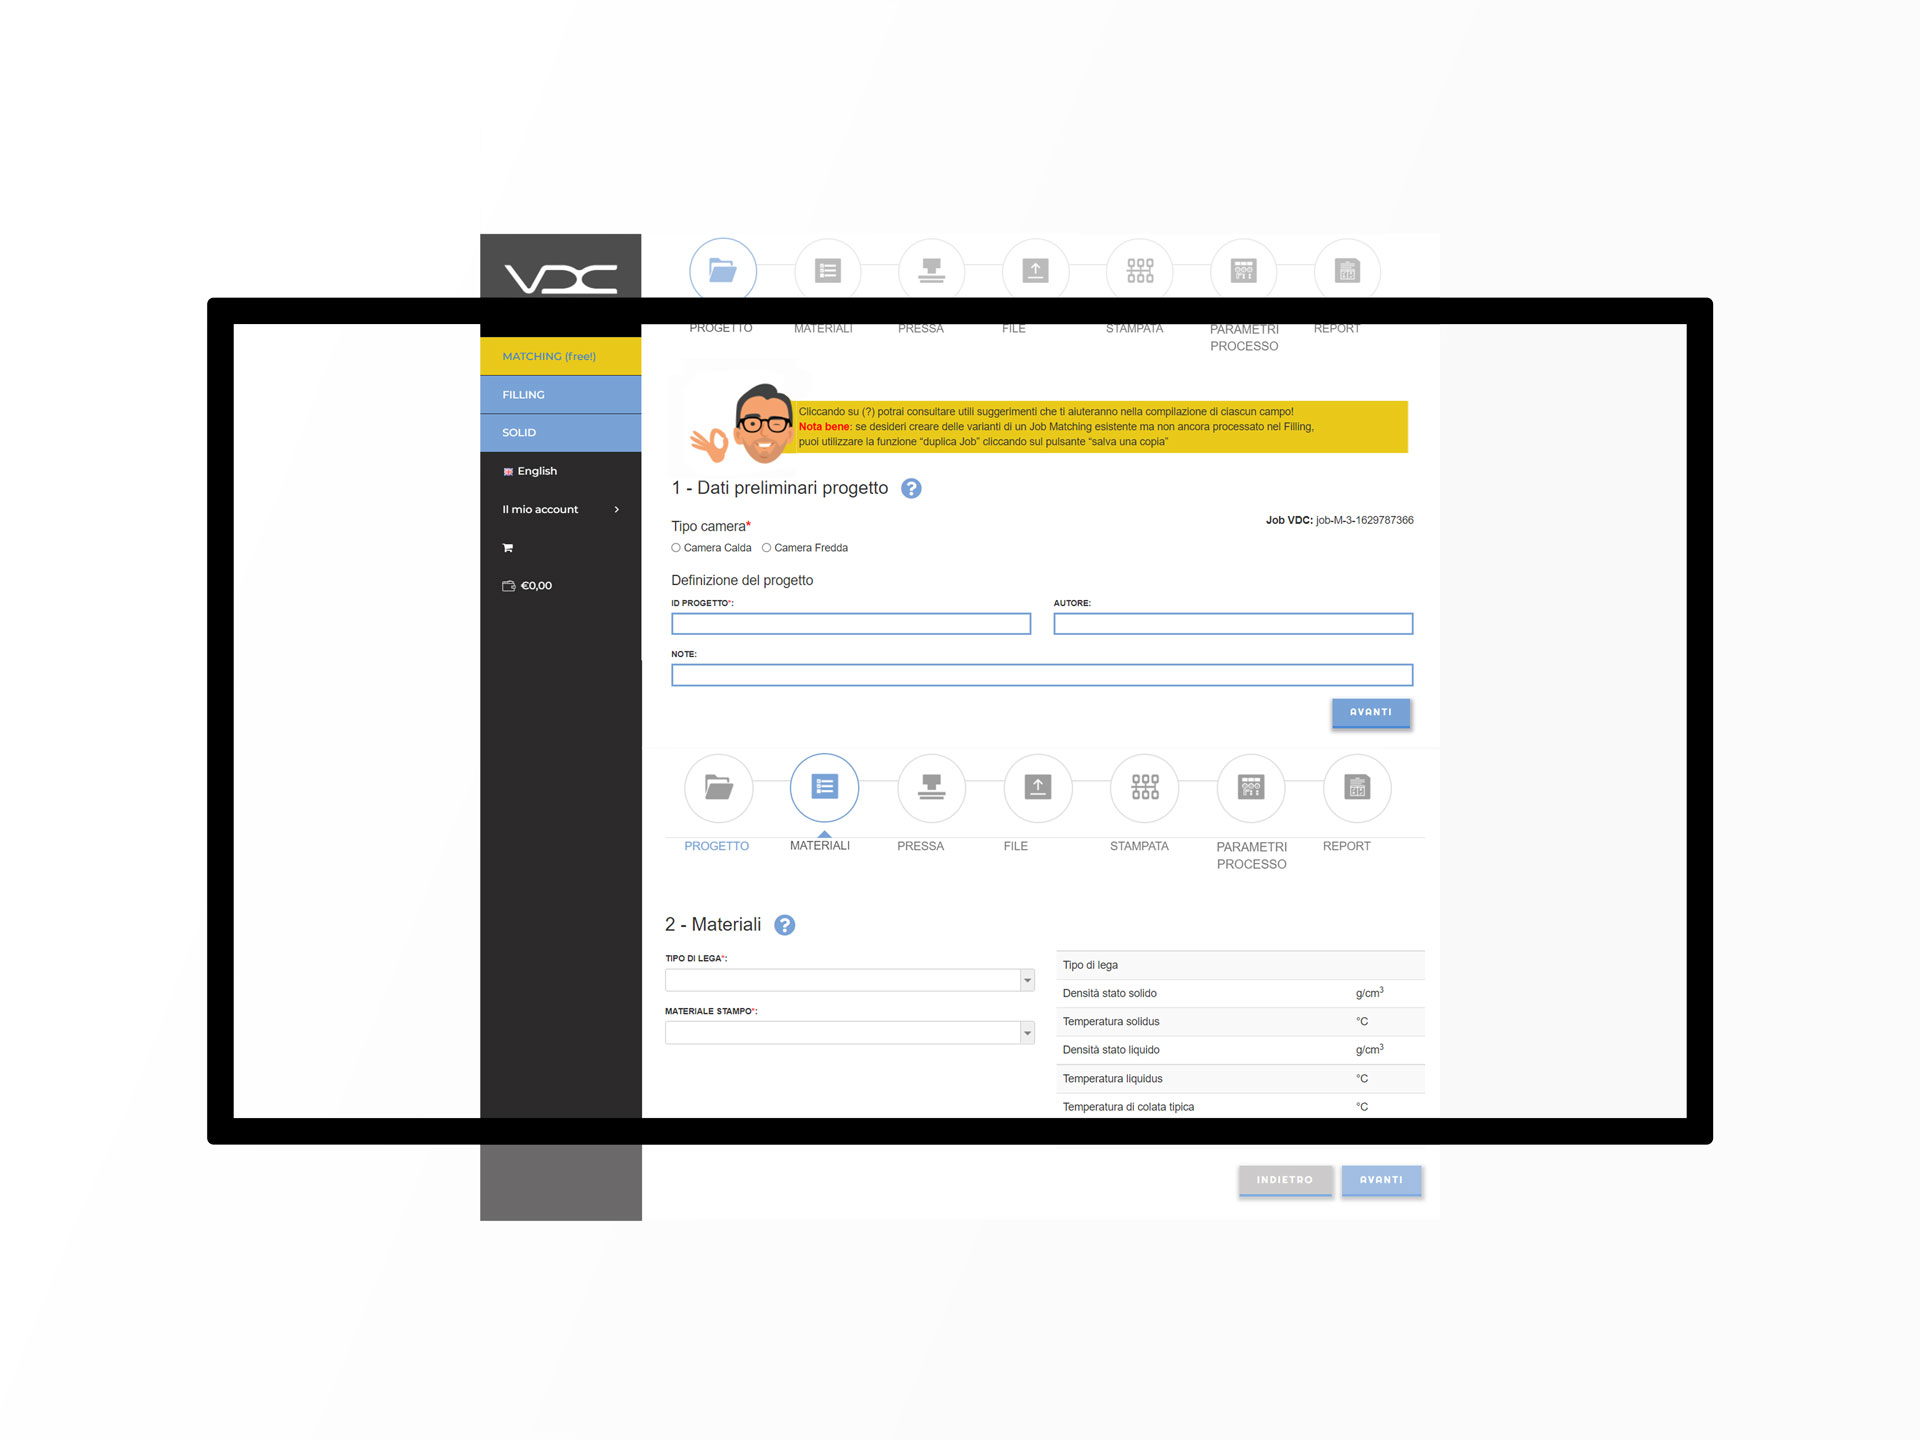 VDC home page